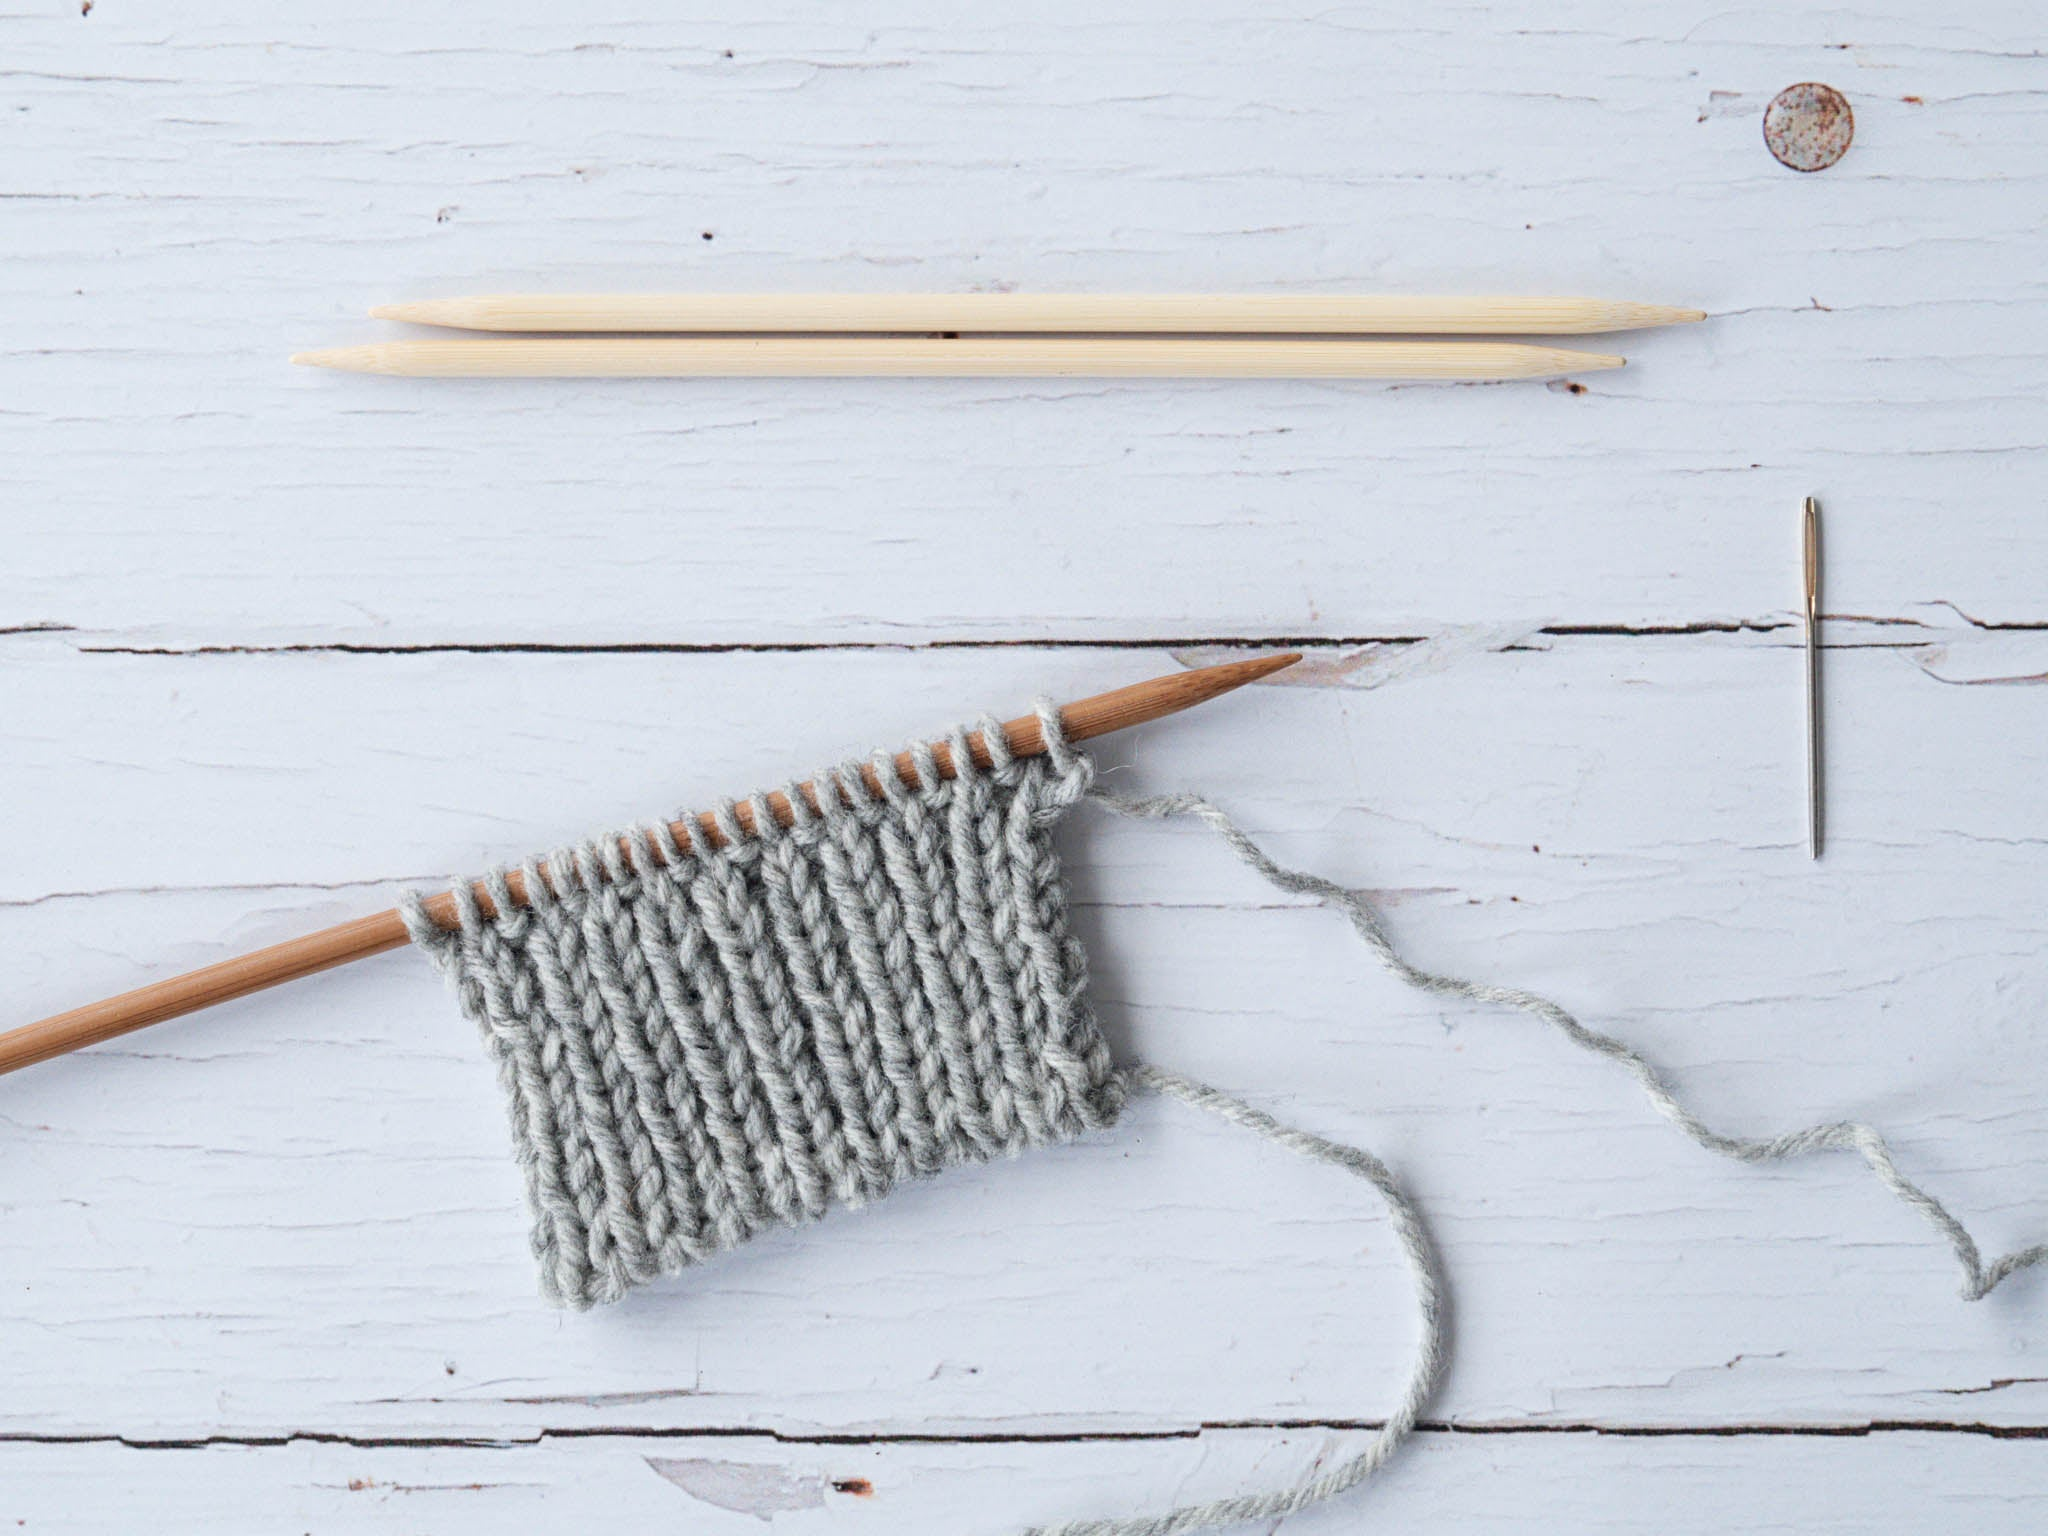 ribbed swatch on a wooden needle with two dpns and a darning needle